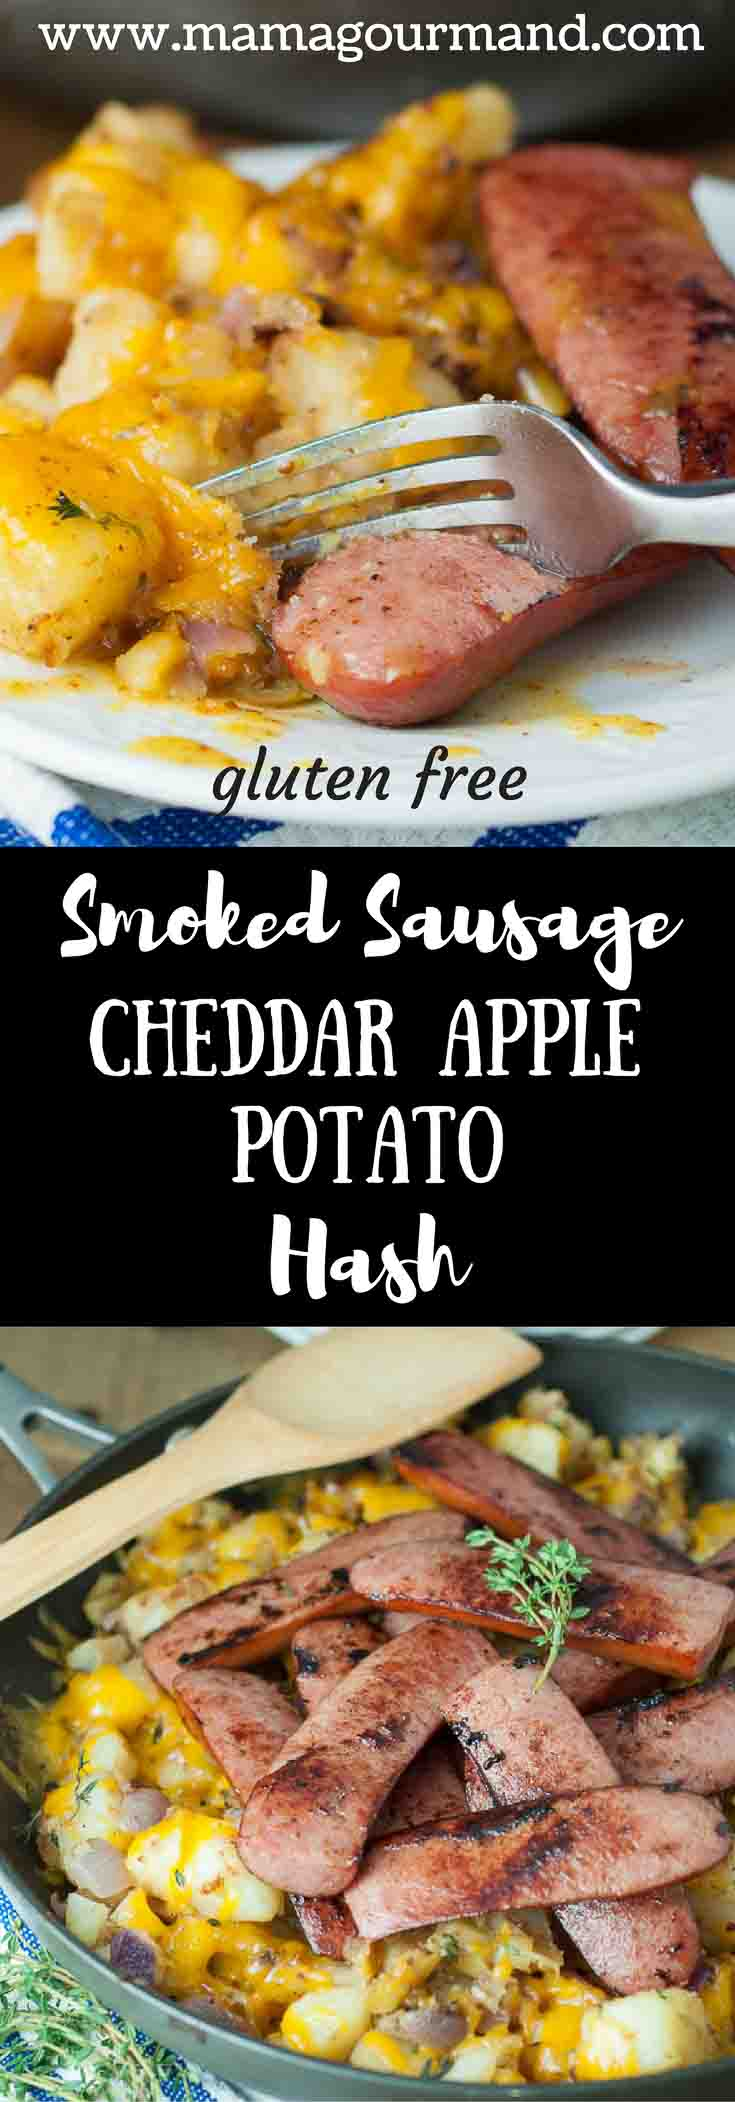 Smoked Sausage with Cheddar Apple Potato Hash is an easy skillet meal your family will love. Smoked sausage on a bed of apple, potato hash with cheddar on top. Yummy! https://www.mamagourmand.com